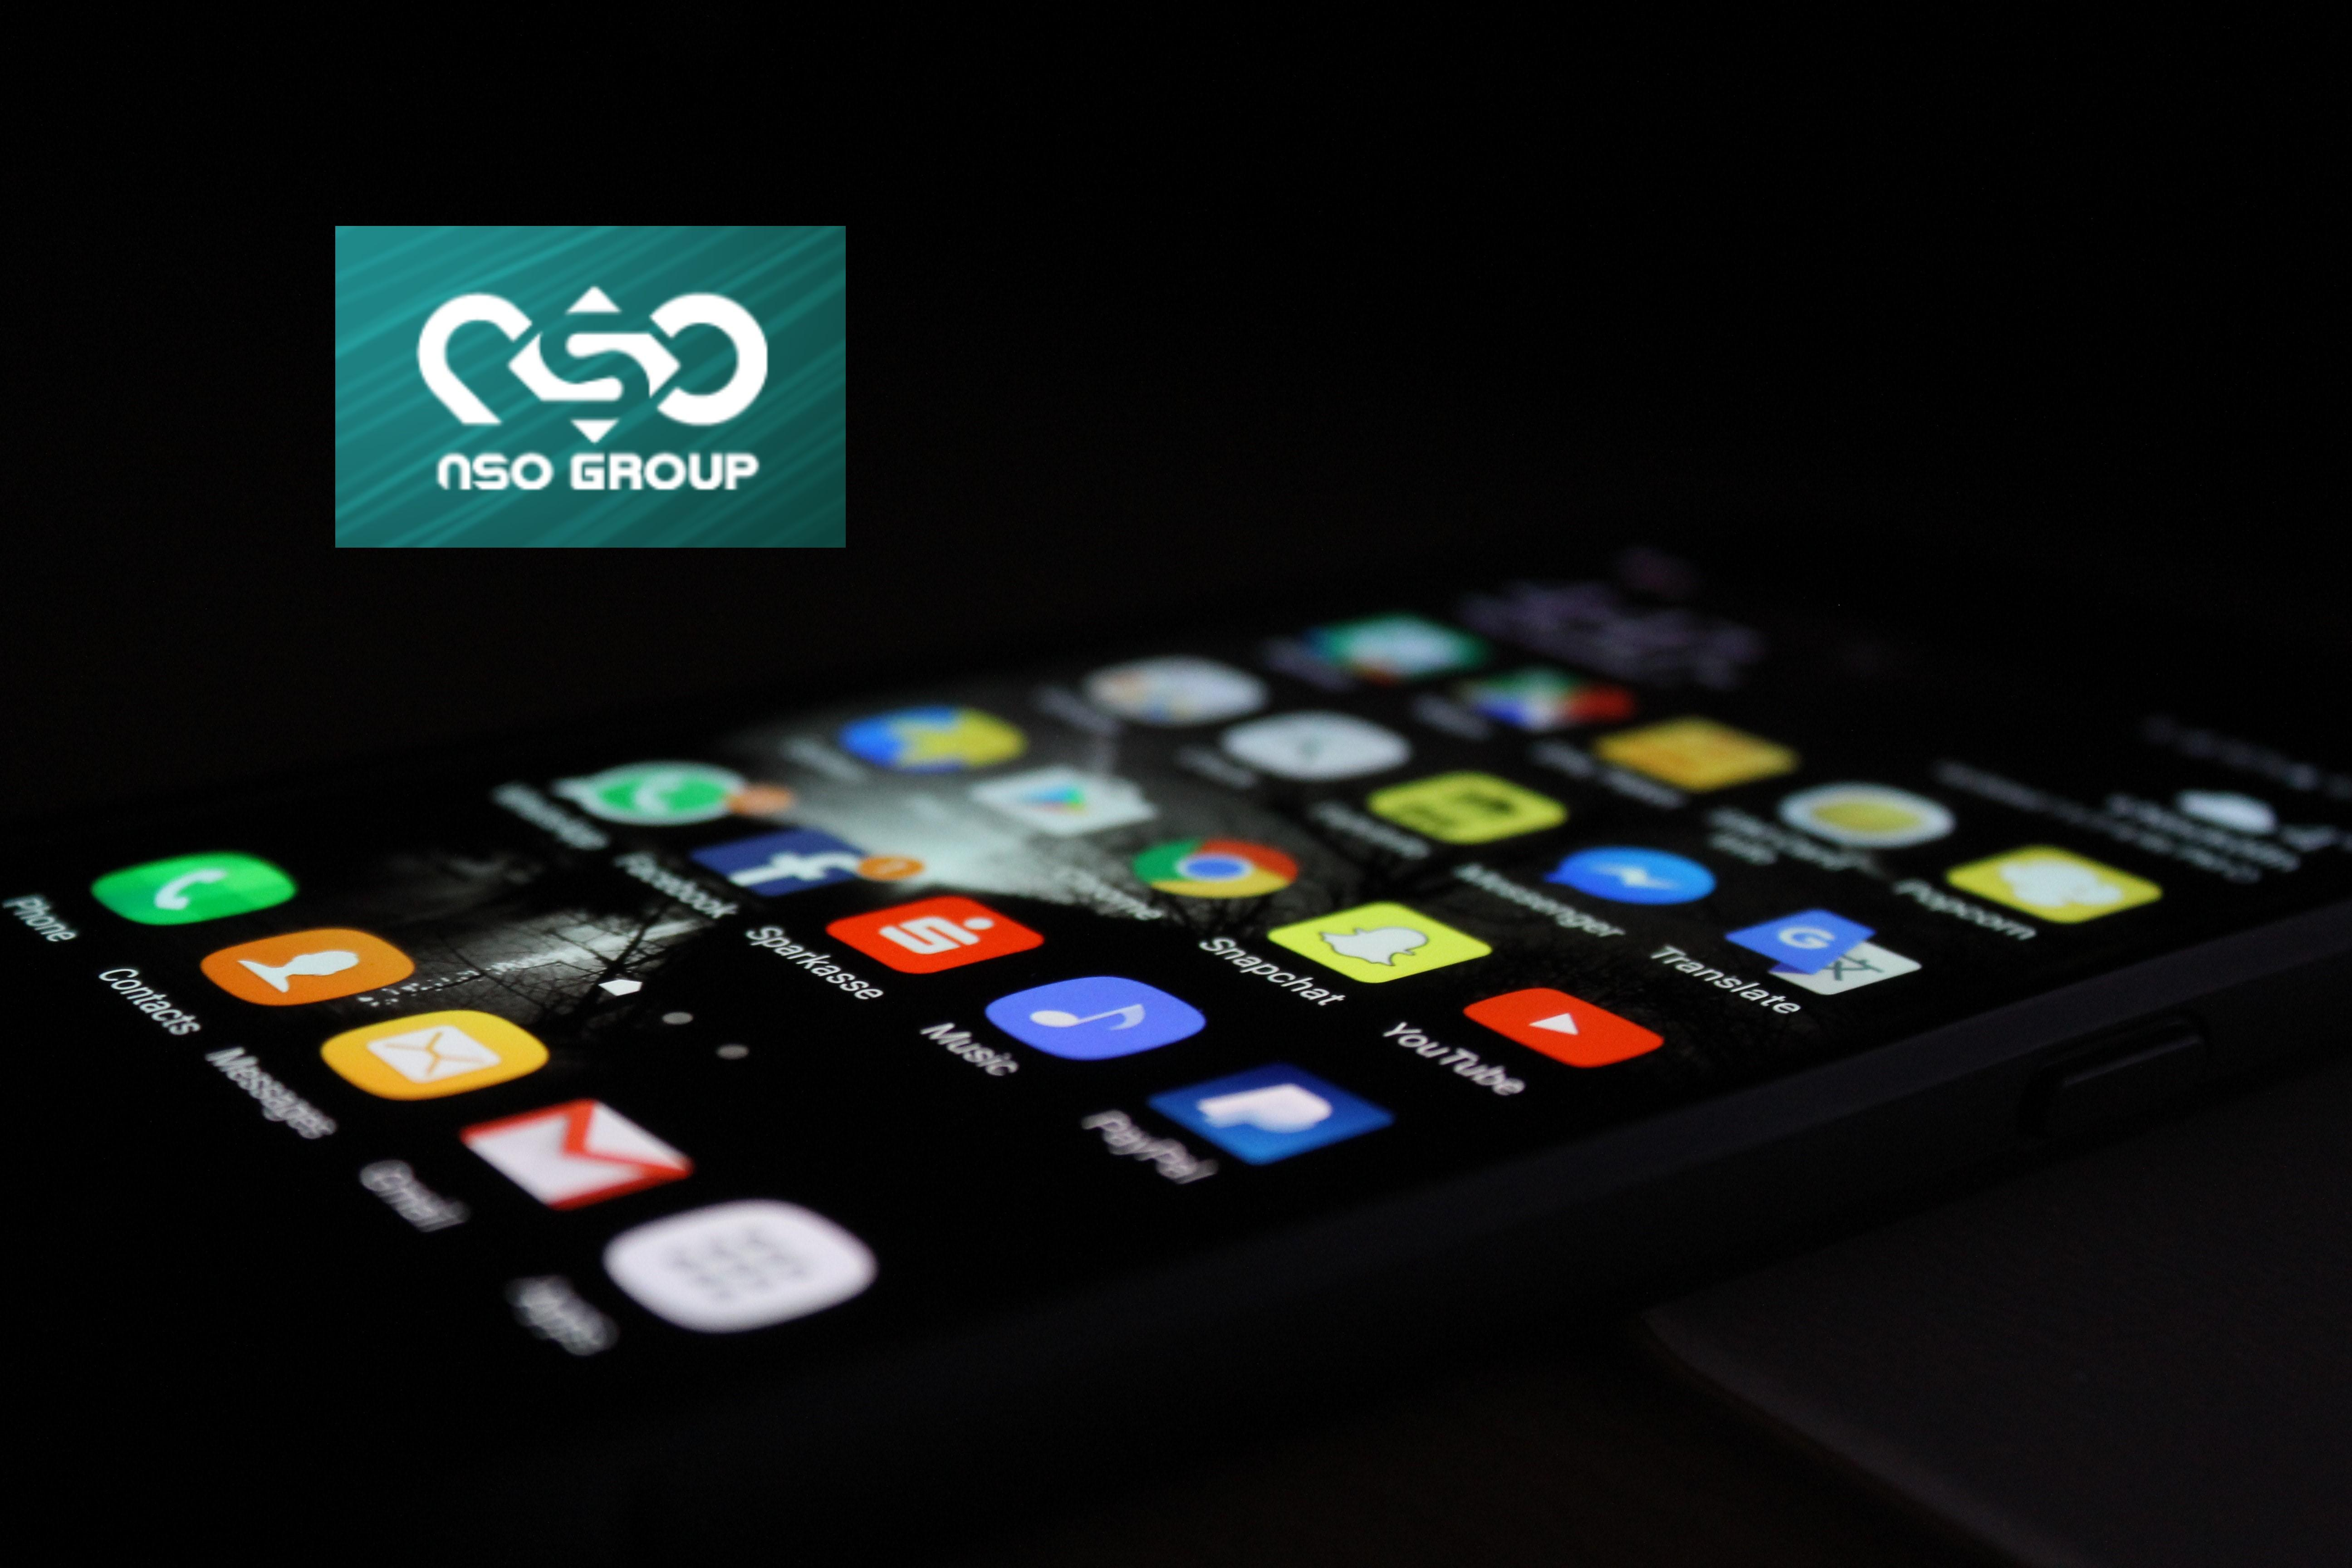 NSO Group logo over image of smartphone